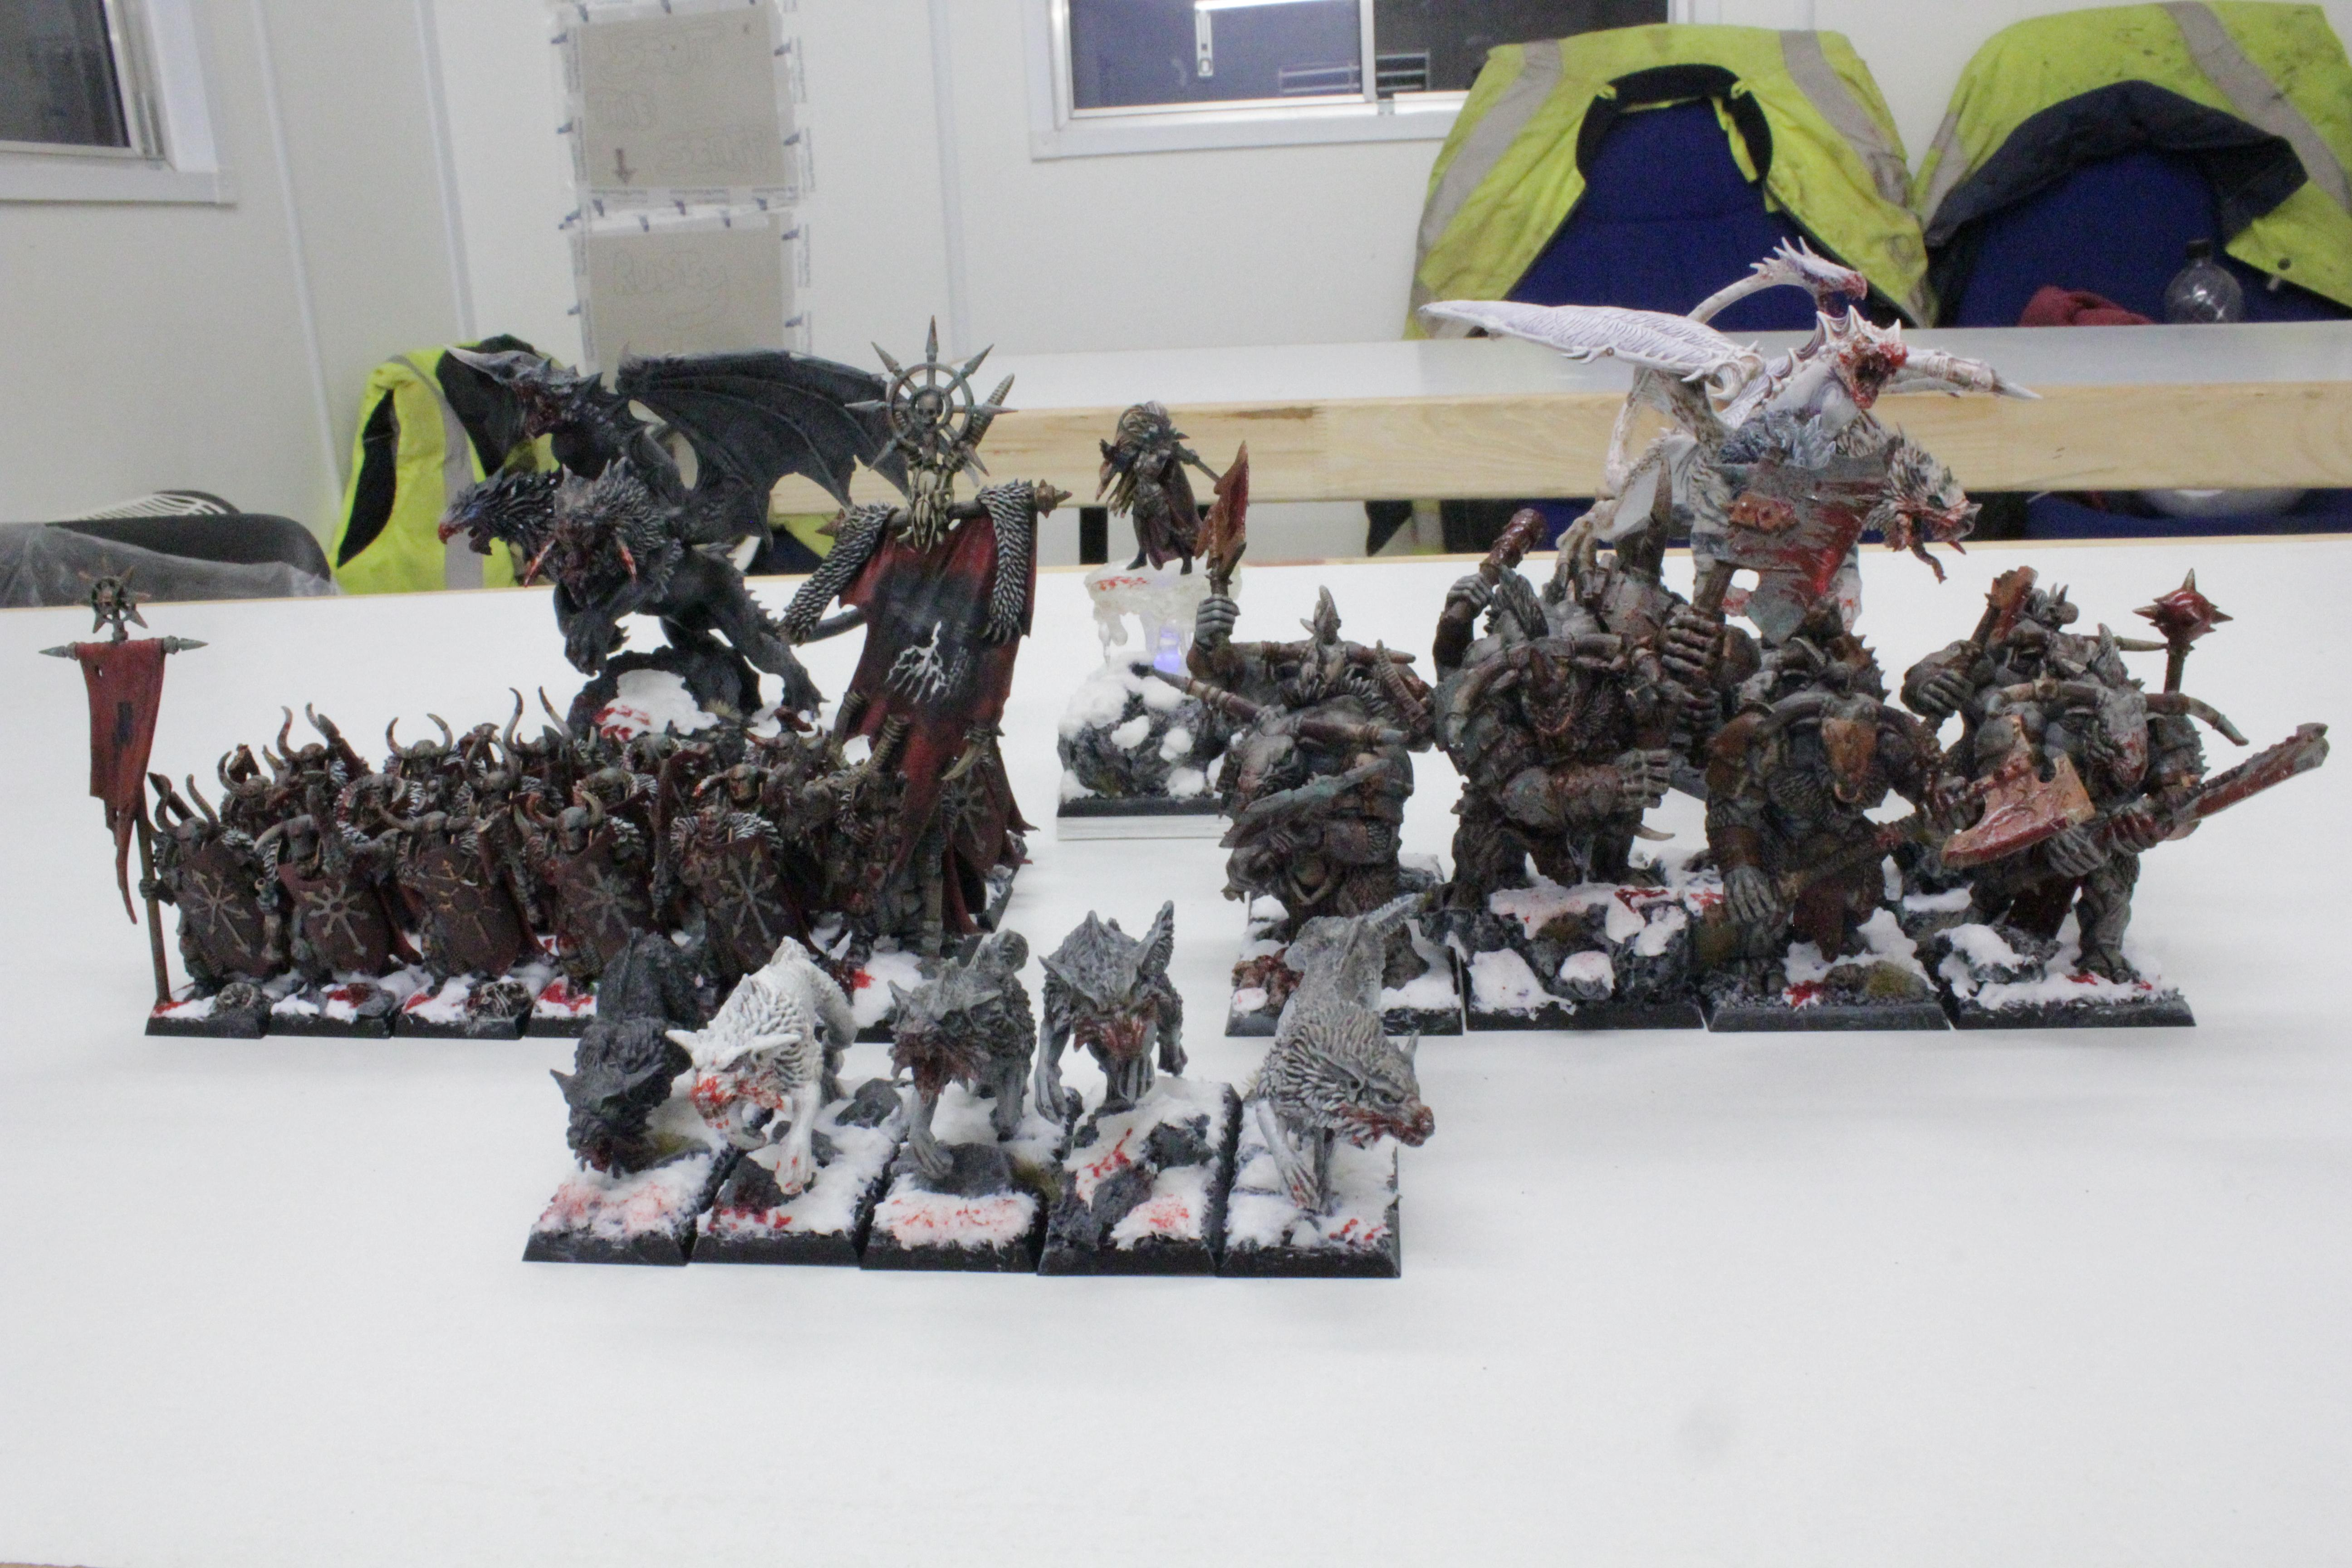 Chaos, Chaos Trolls, Chimera, Disk Of Tzeentch, Minotaurs, Sorceress, Standard Bearer, Warhammer Fantasy, Warhound, Warriors, Warriors Of Chaos, Woc